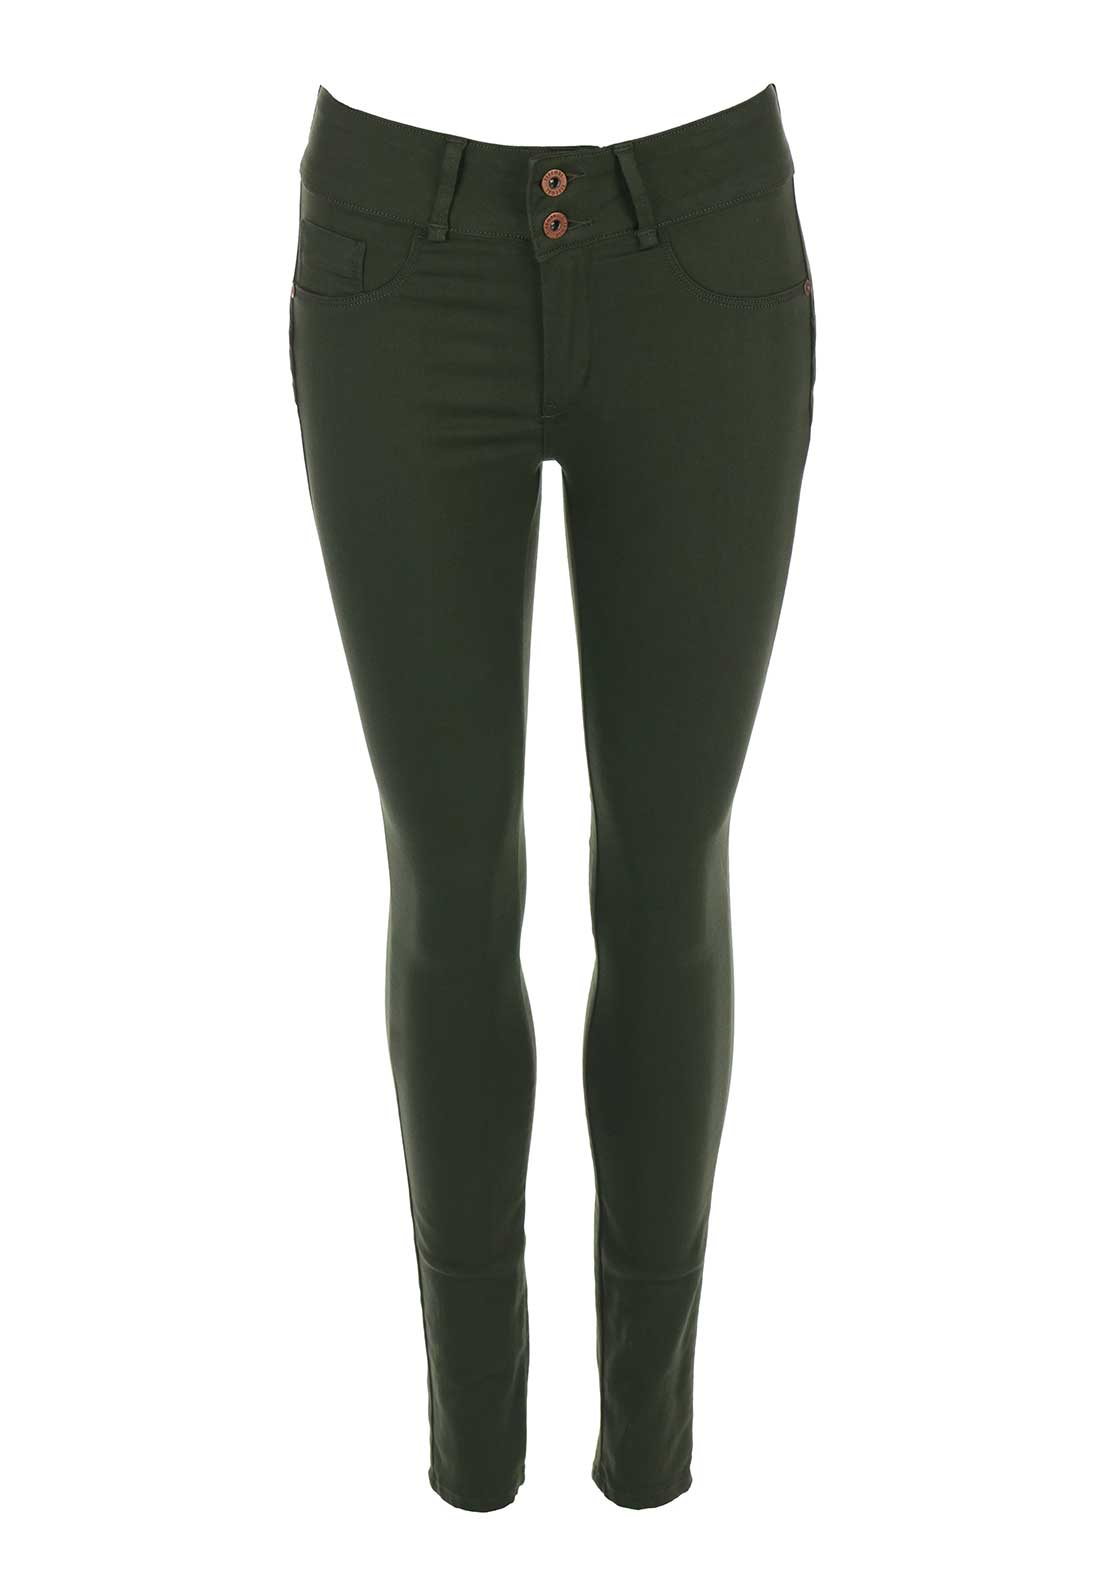 Tiffosi Womens One Size Double Up Skinny Jeans, Green